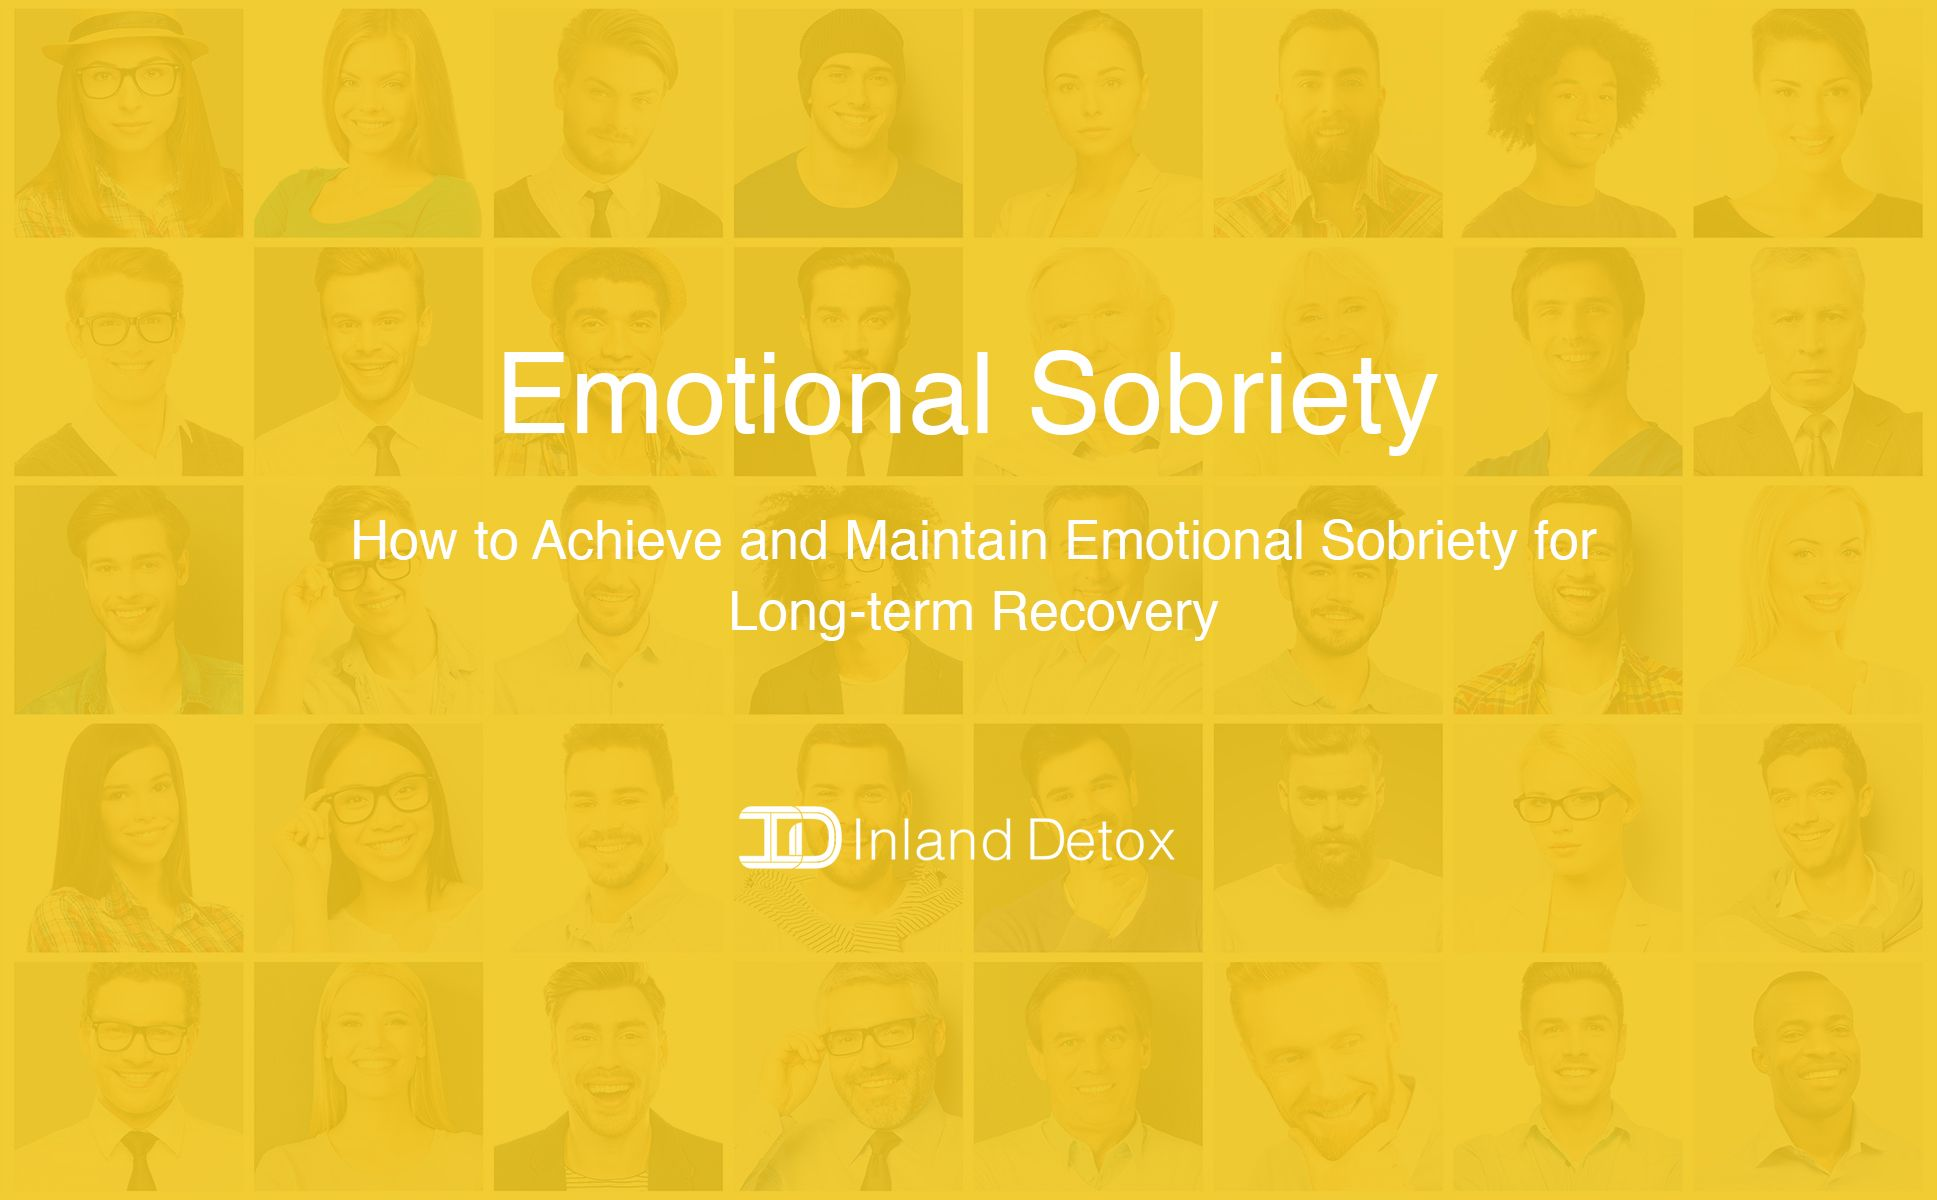 How to Achieve and Maintain Emotional Sobriety for Long